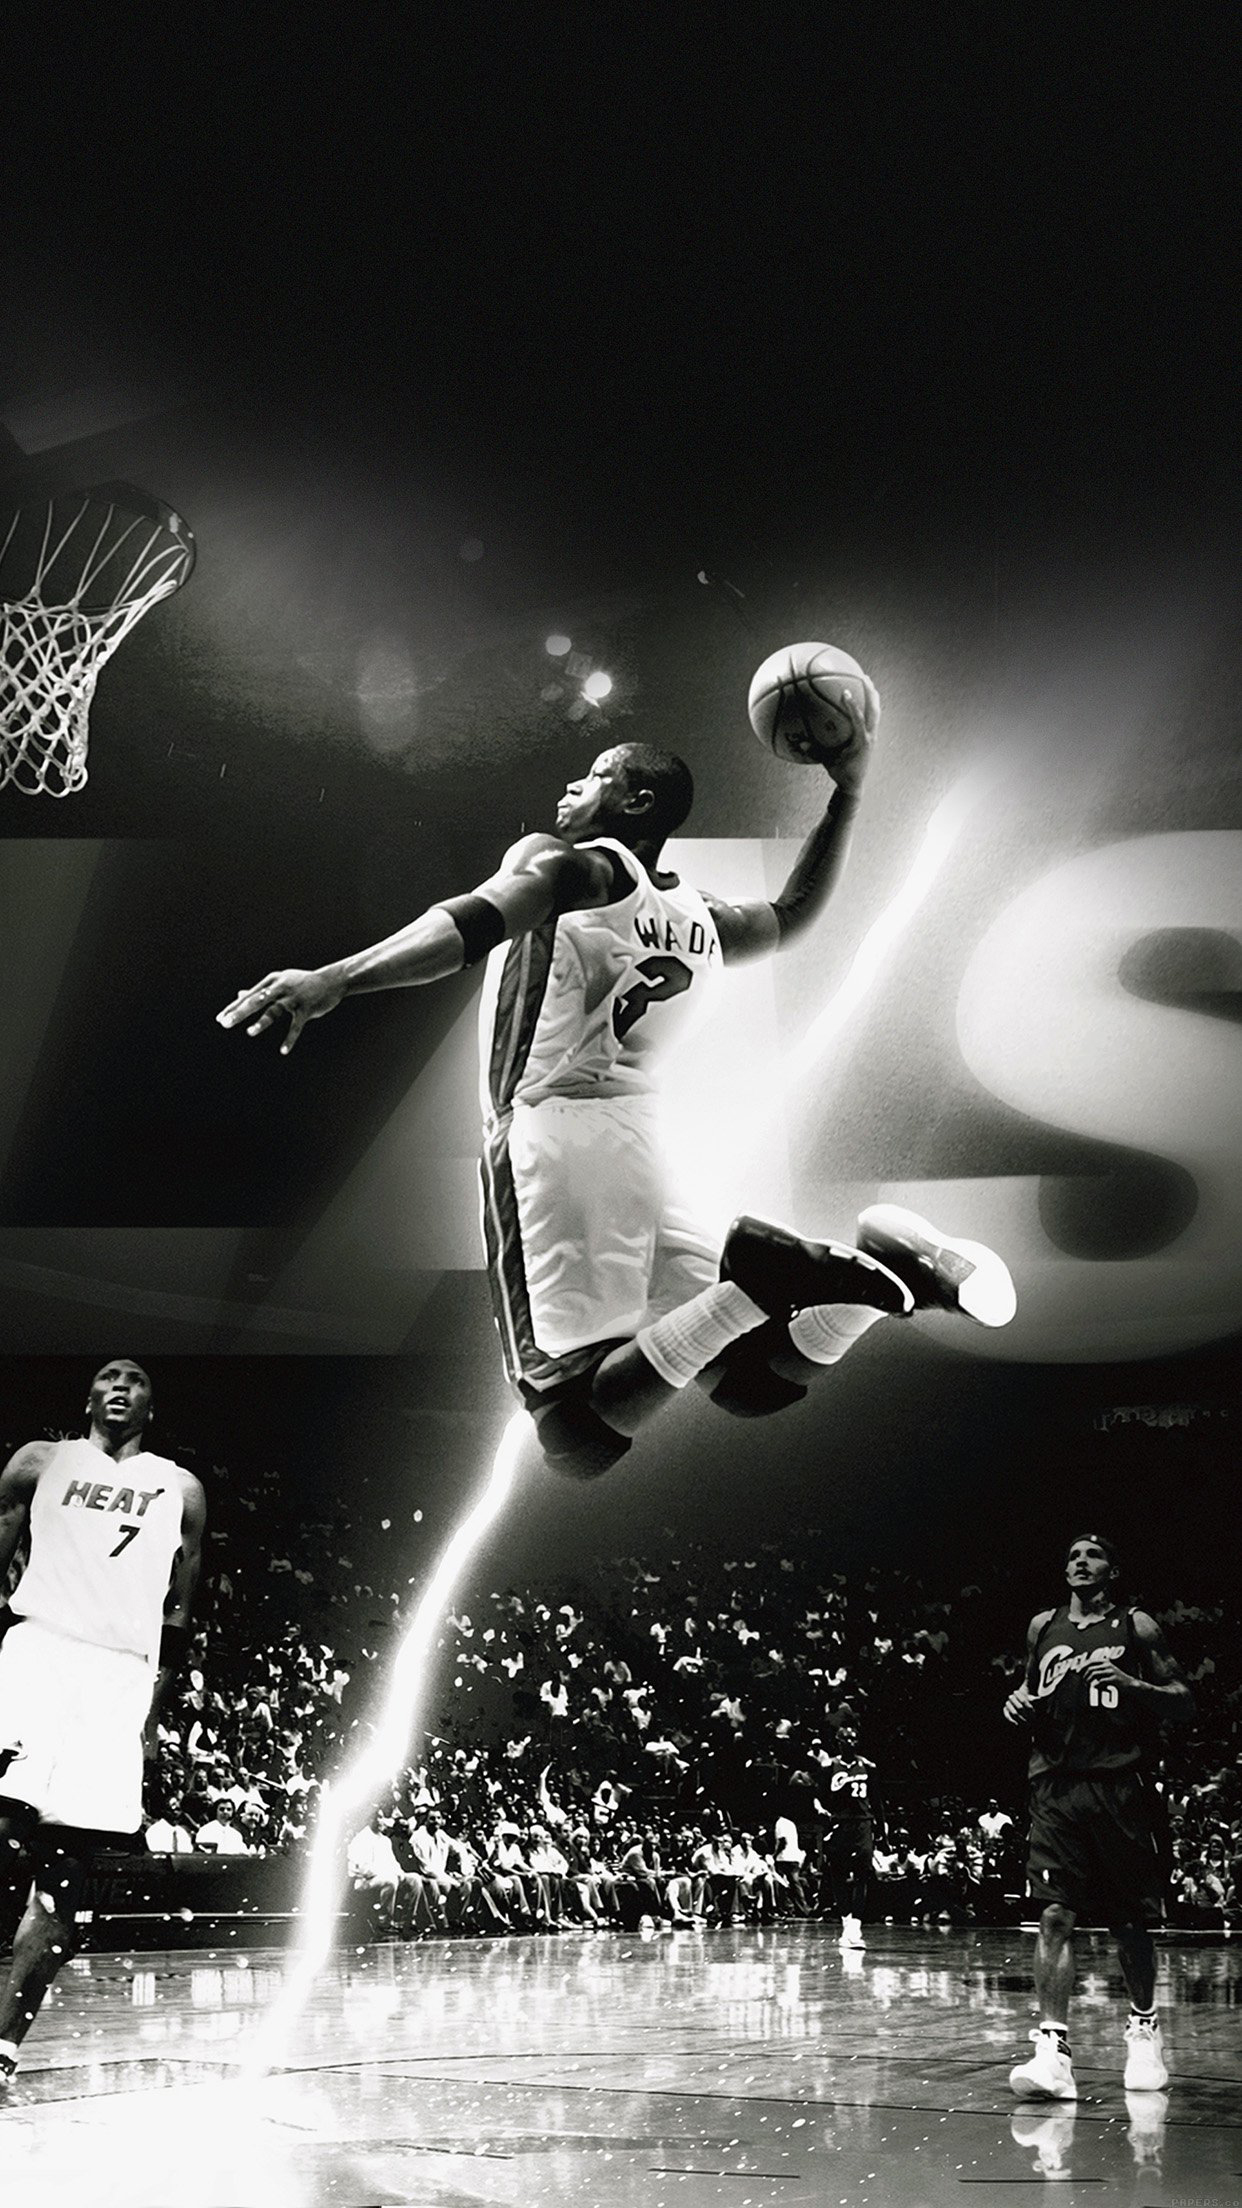 Nba Dunk Wallpaper For Iphone X 8 7 6 Free Download On 3wallpapers